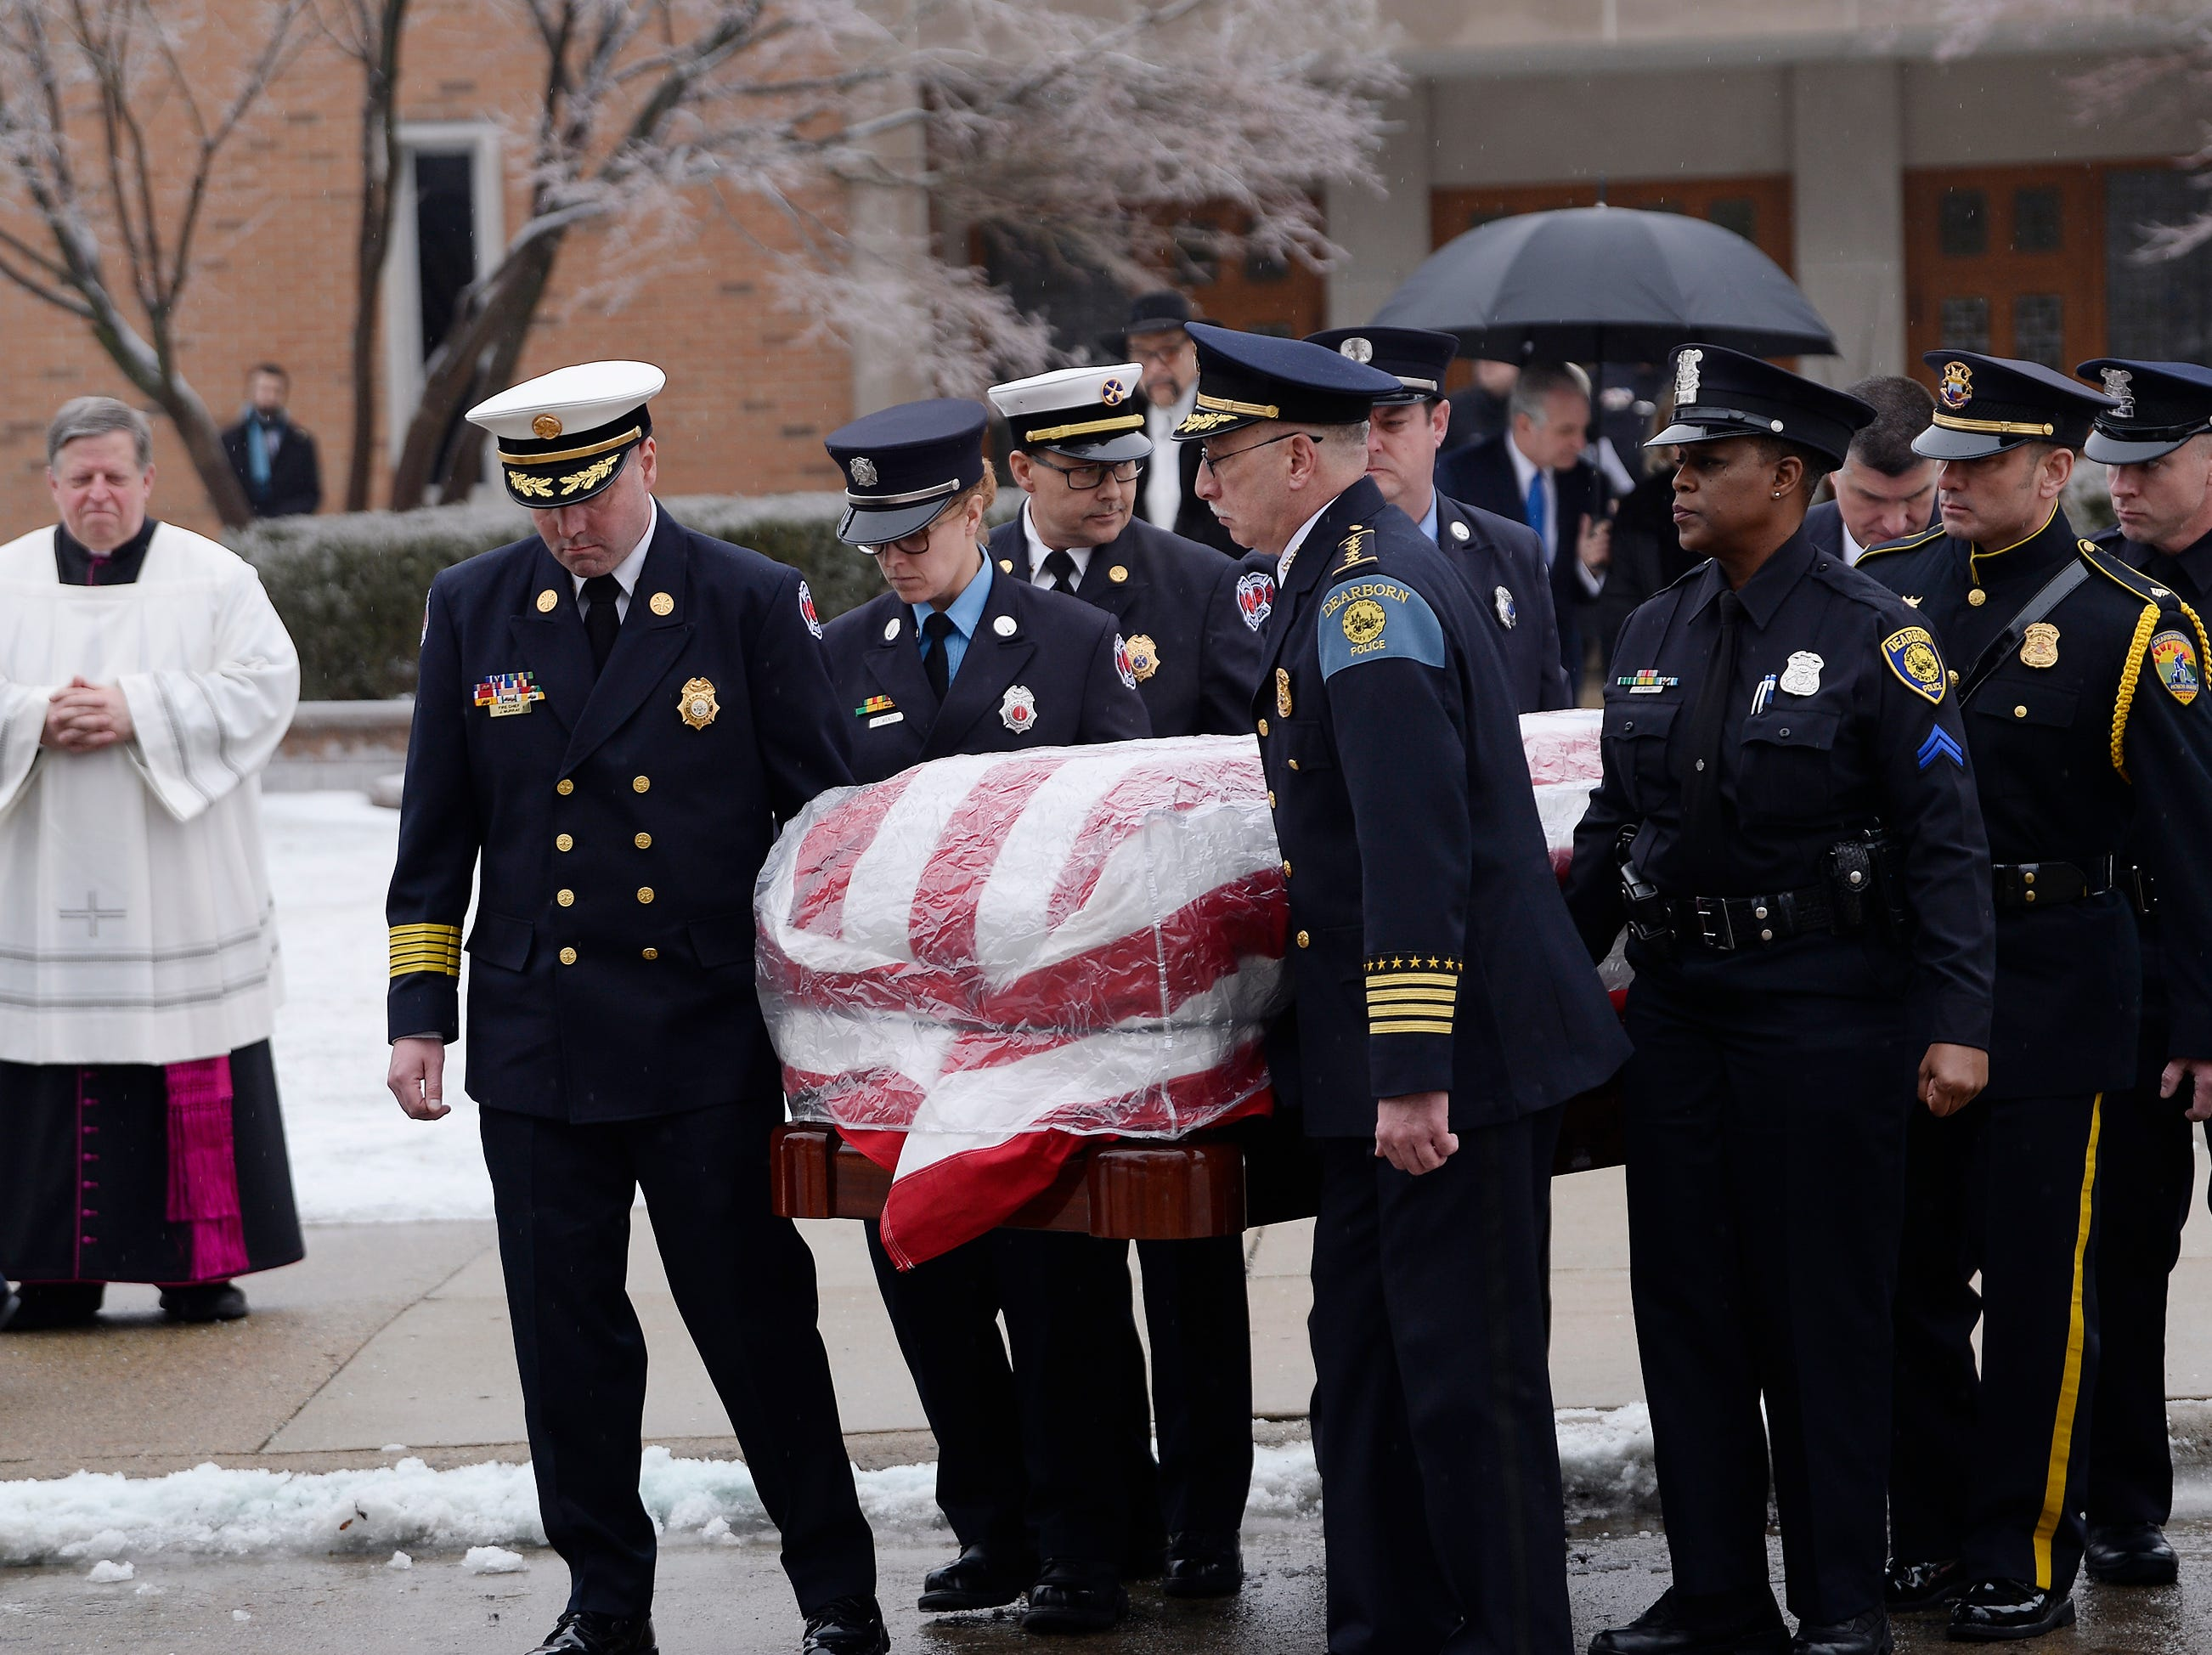 Dearborn Fire Chief Joseph Murray (left) and Dearborn Police Chief Ronald Haddad (center) along with other first responders carry the casket of former U.S. Rep. John D. Dingell to the hearse after the funeral.